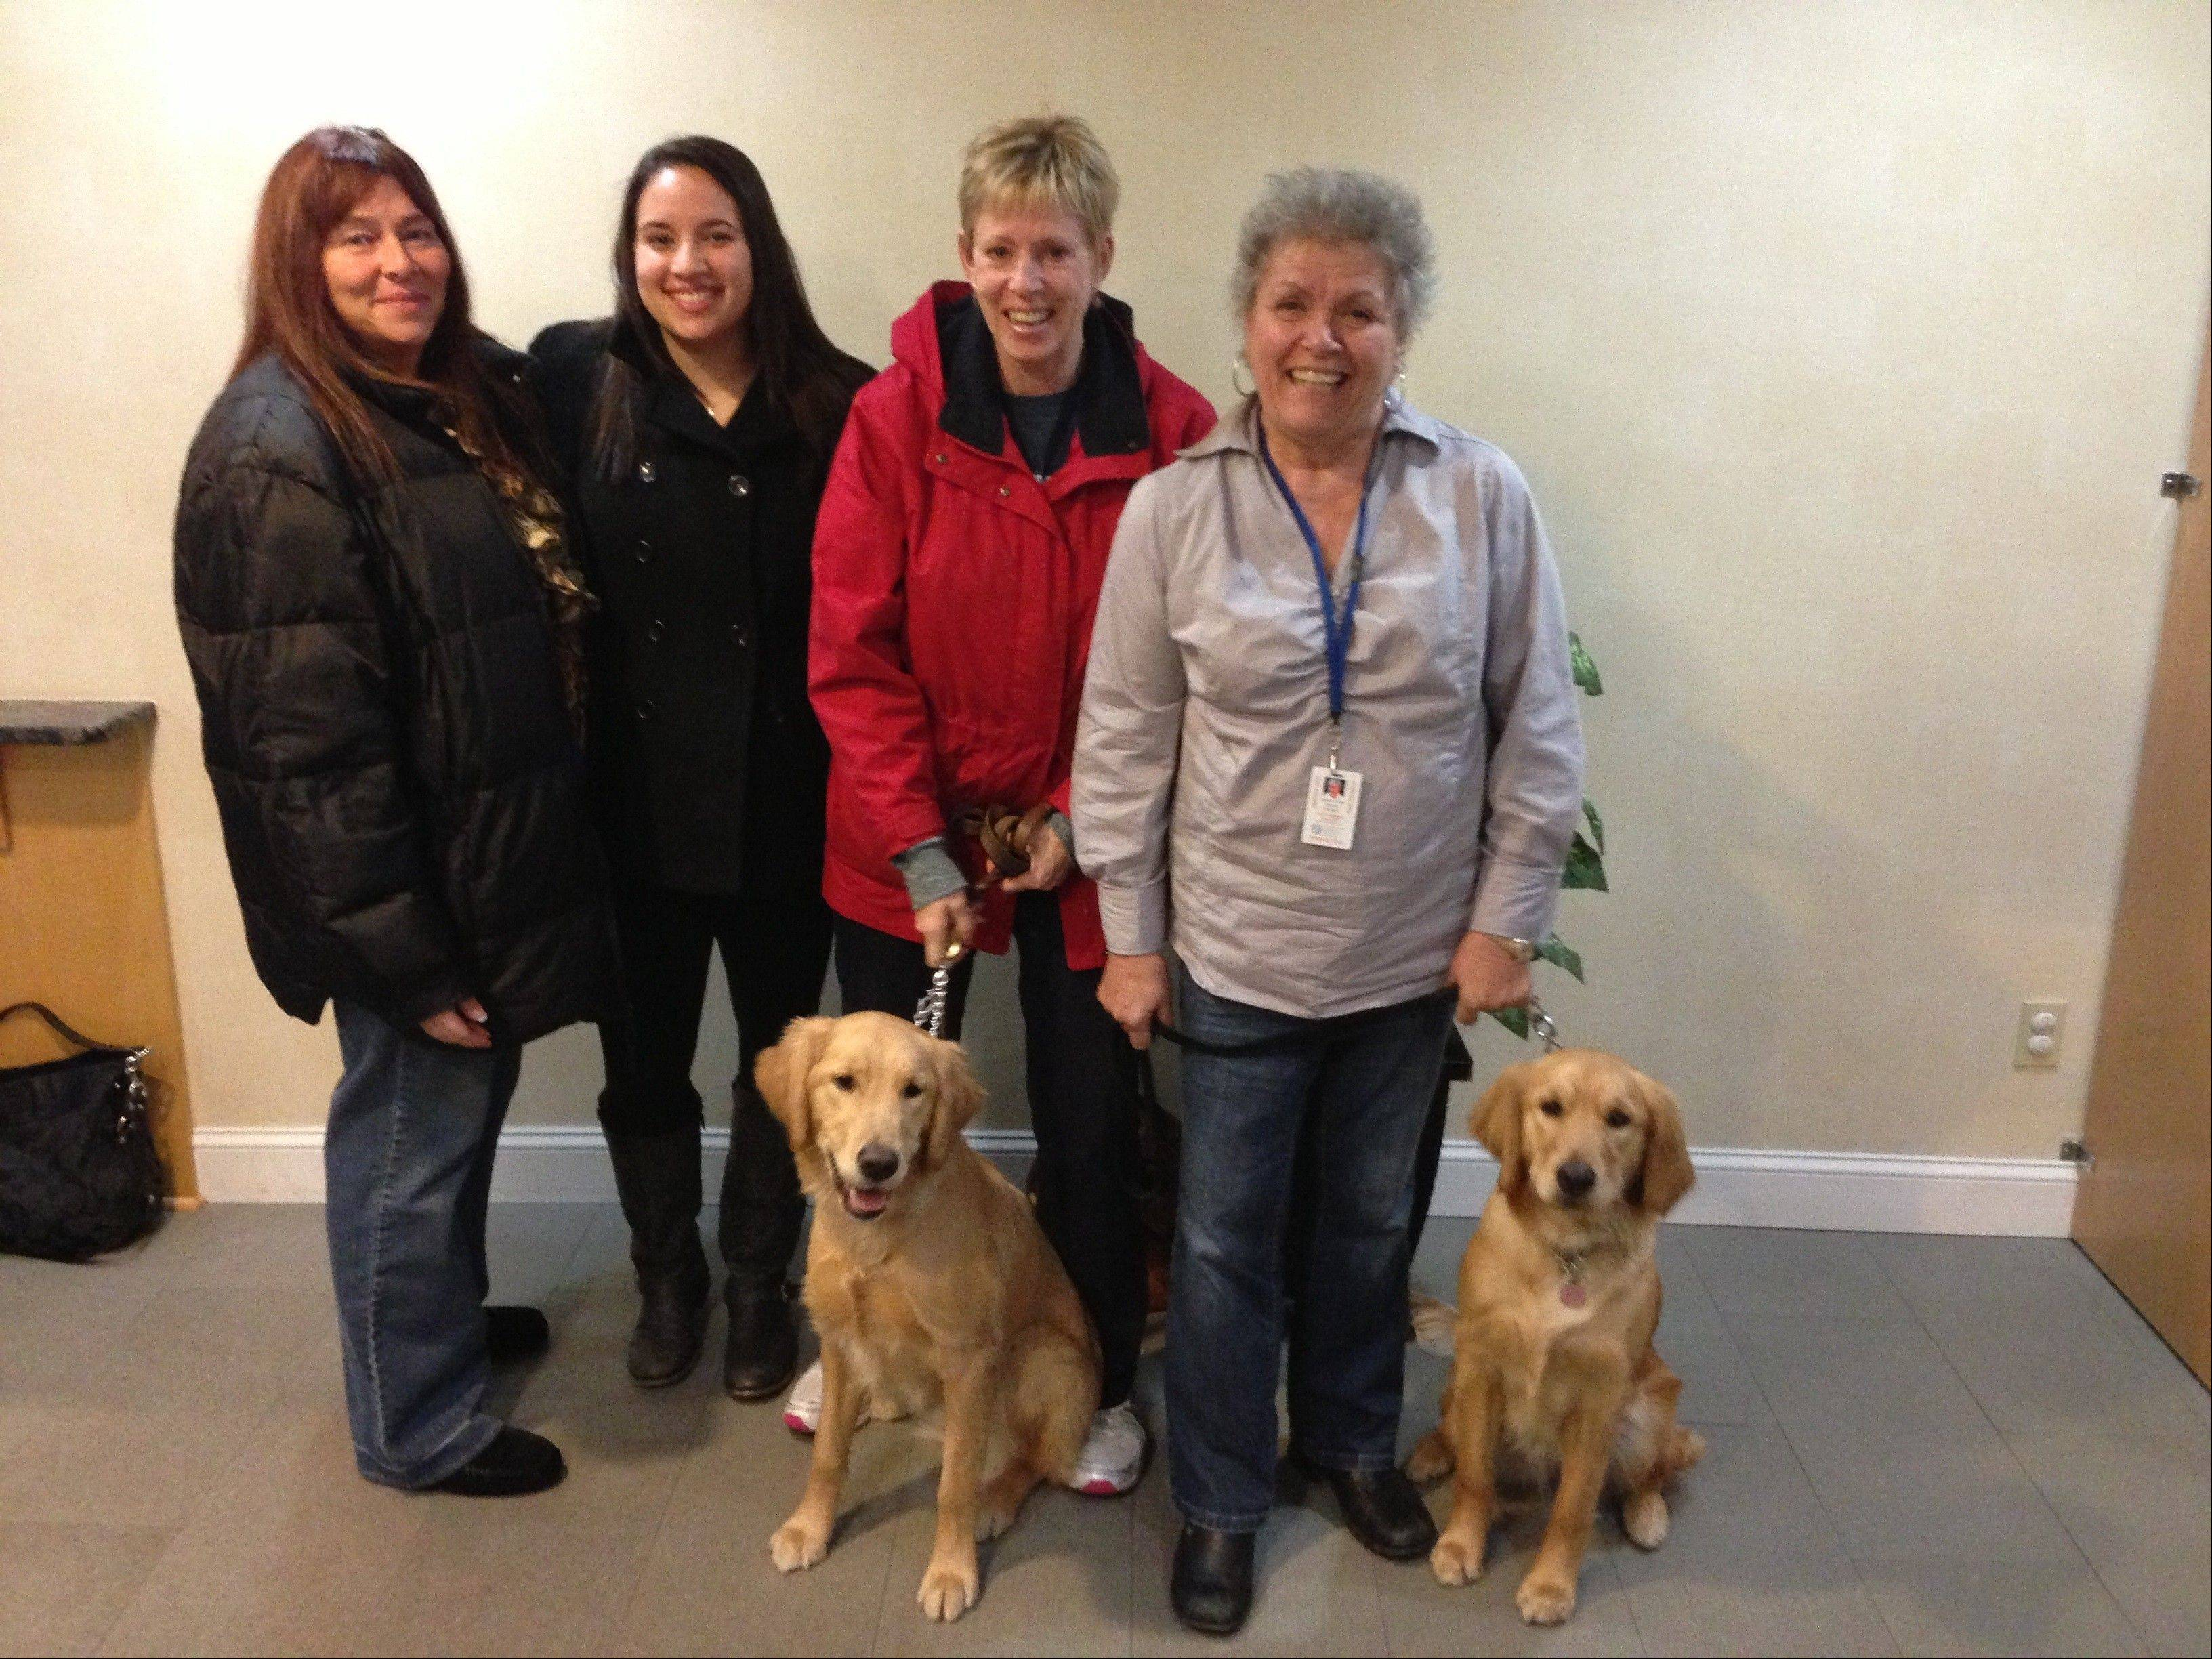 Marcy and Lacey Brooks, of Des Plaines, Barb Granado of Arlington Heights (with dog Hannah), and Sharon Flaherty of Arlington Heights (with dog Maggie), arrive in Newtown, Conn., to help Lutheran Church Charities' Comfort Dog Ministry.